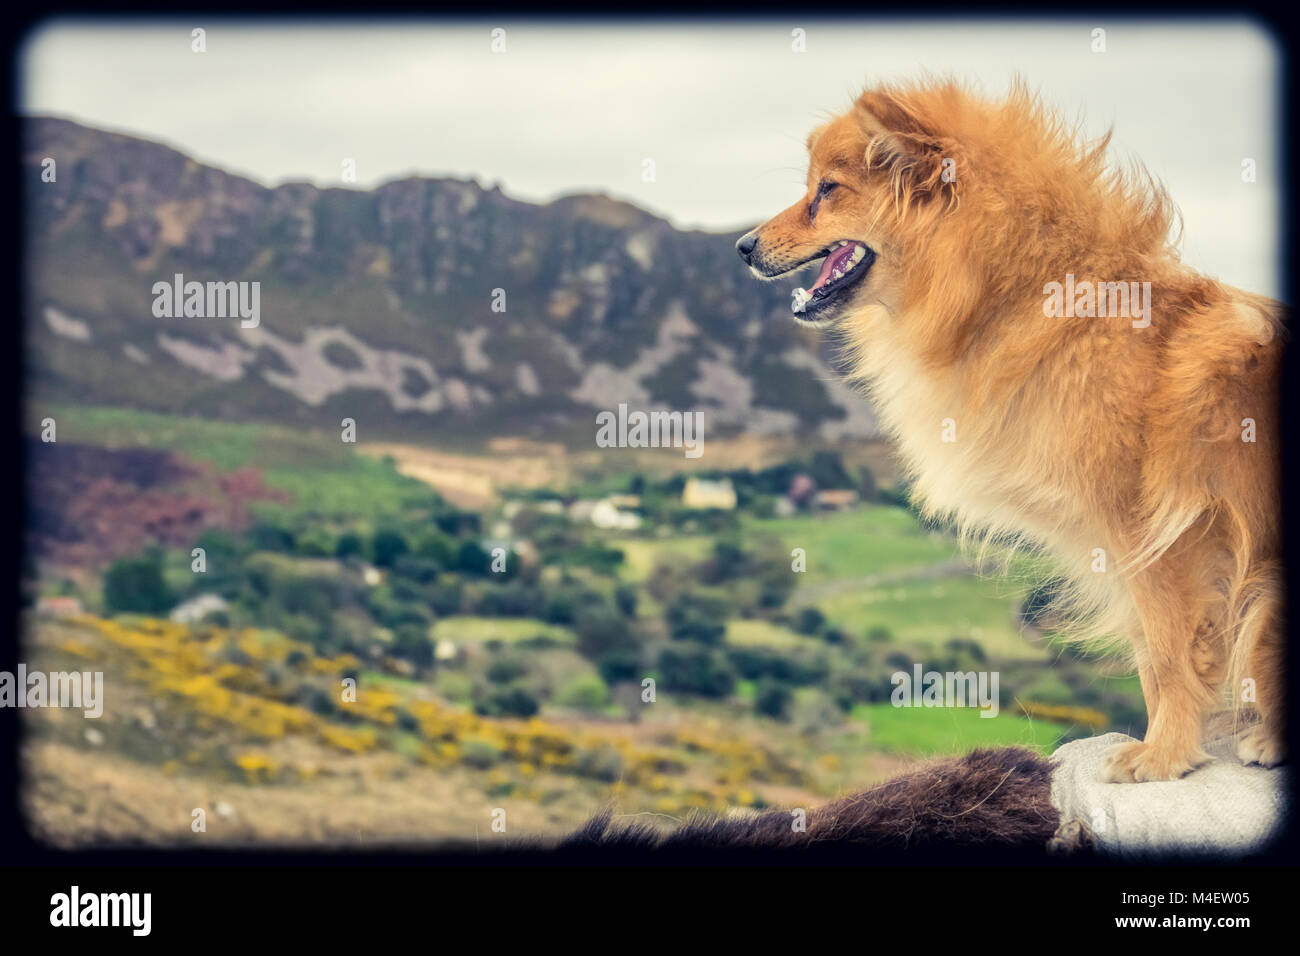 Cute brown dog and rural landscape Stock Photo